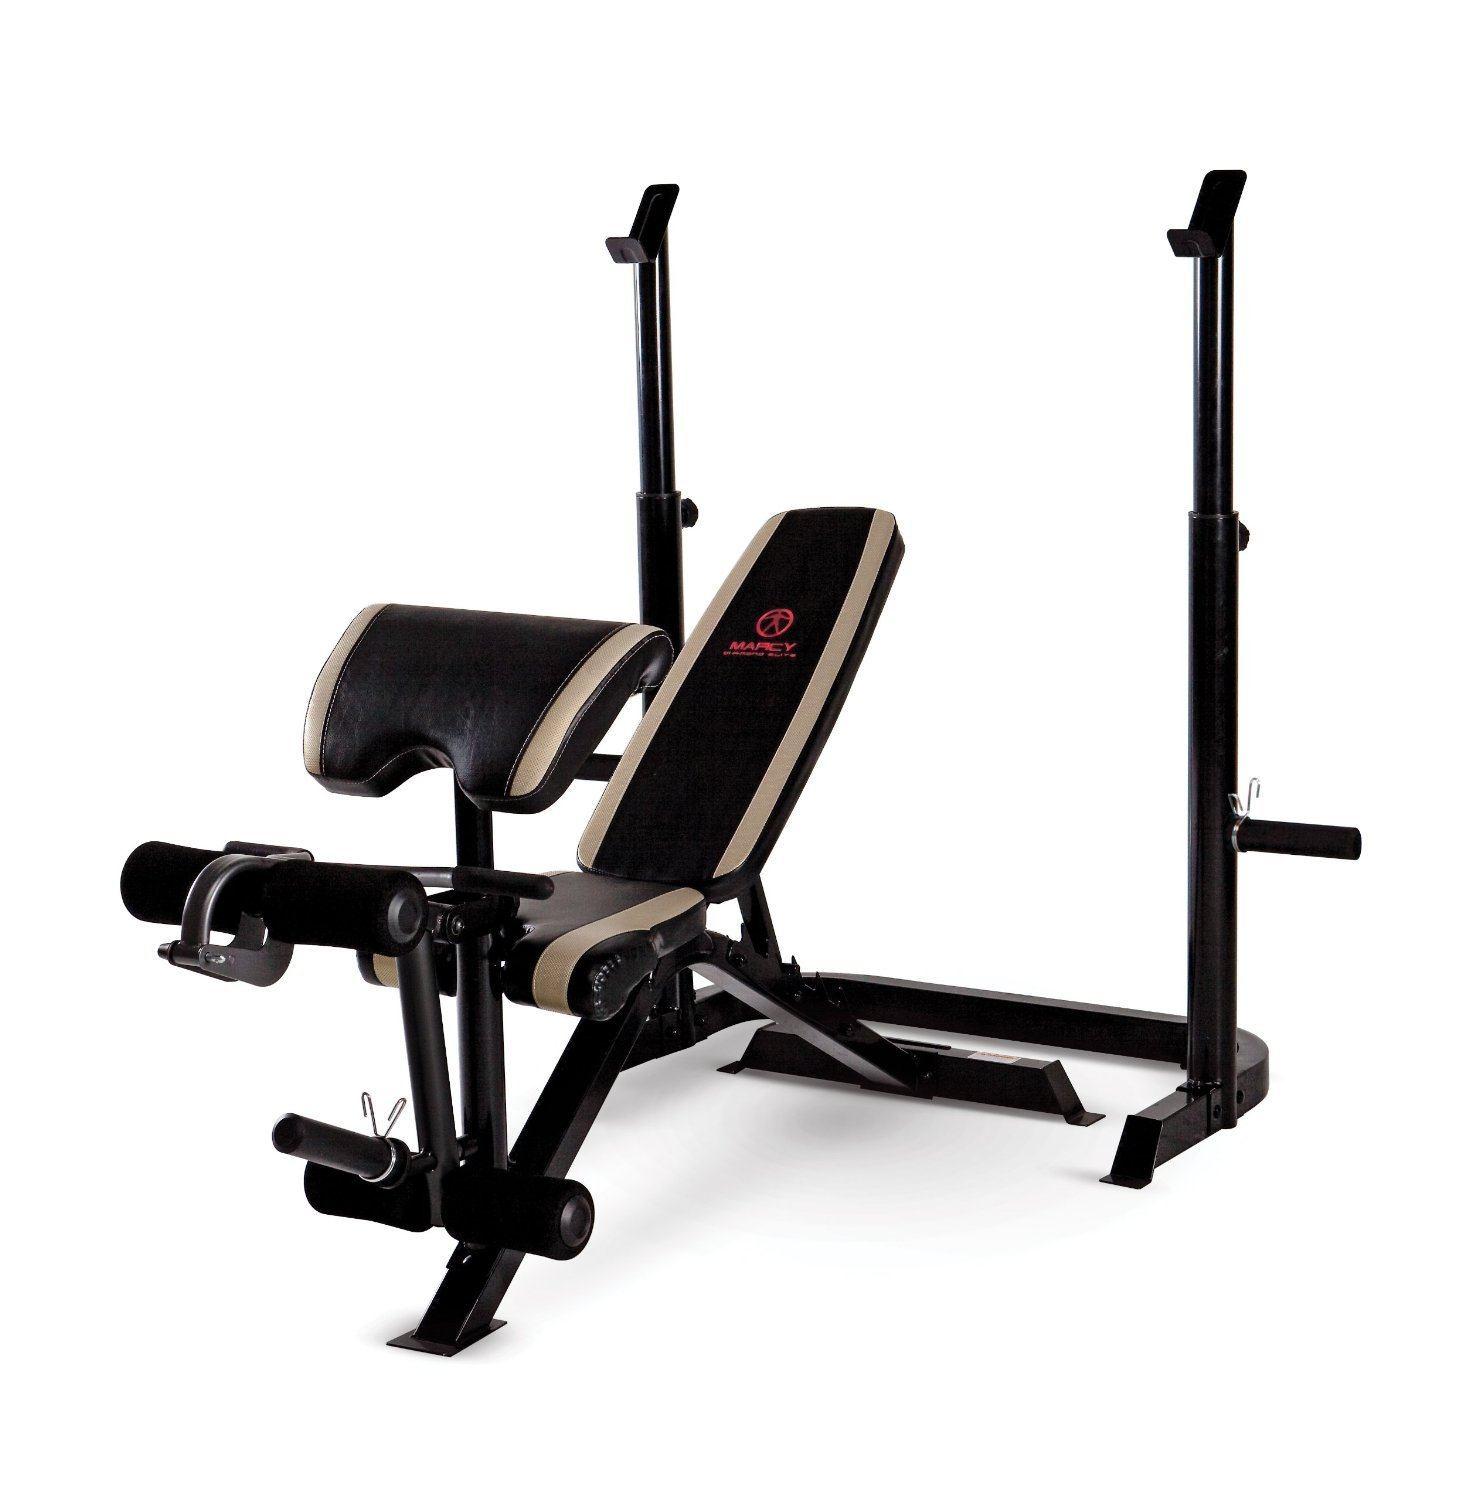 Marcy Adjustable Olympic Weight Bench with Leg Developer and Squat Rack MD-879 by Marcy (Image #2)